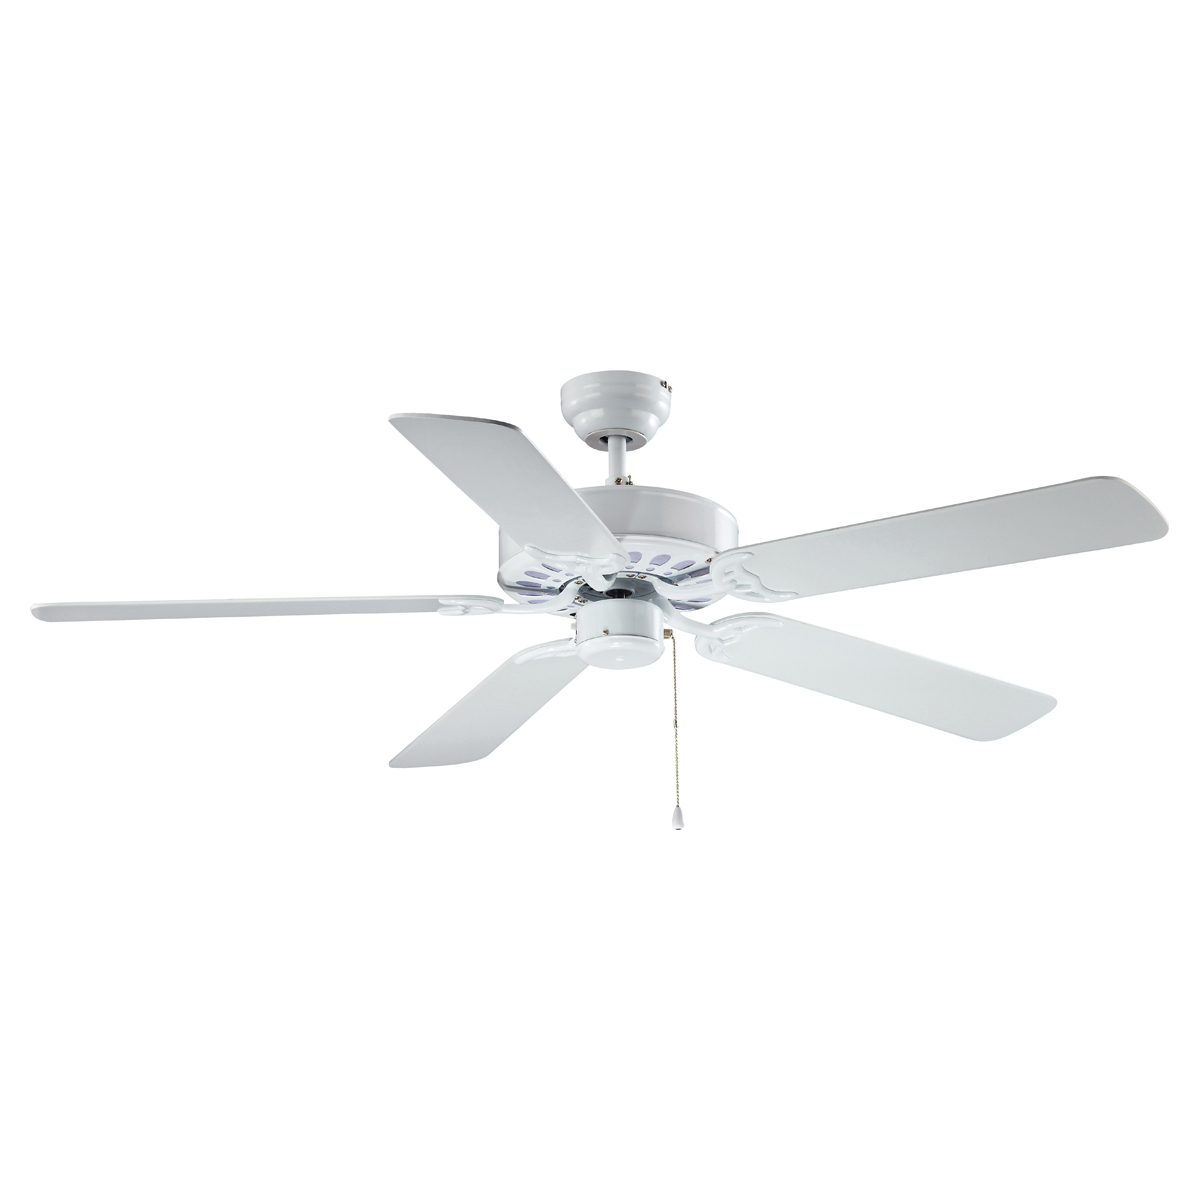 Picture of Boston Harbor 52-CASA-ES-EN-WH Ceiling Fan, 0.8 A, 120 V, 5-Blade, 52 in Sweep, 2940 cfm Air, White Housing